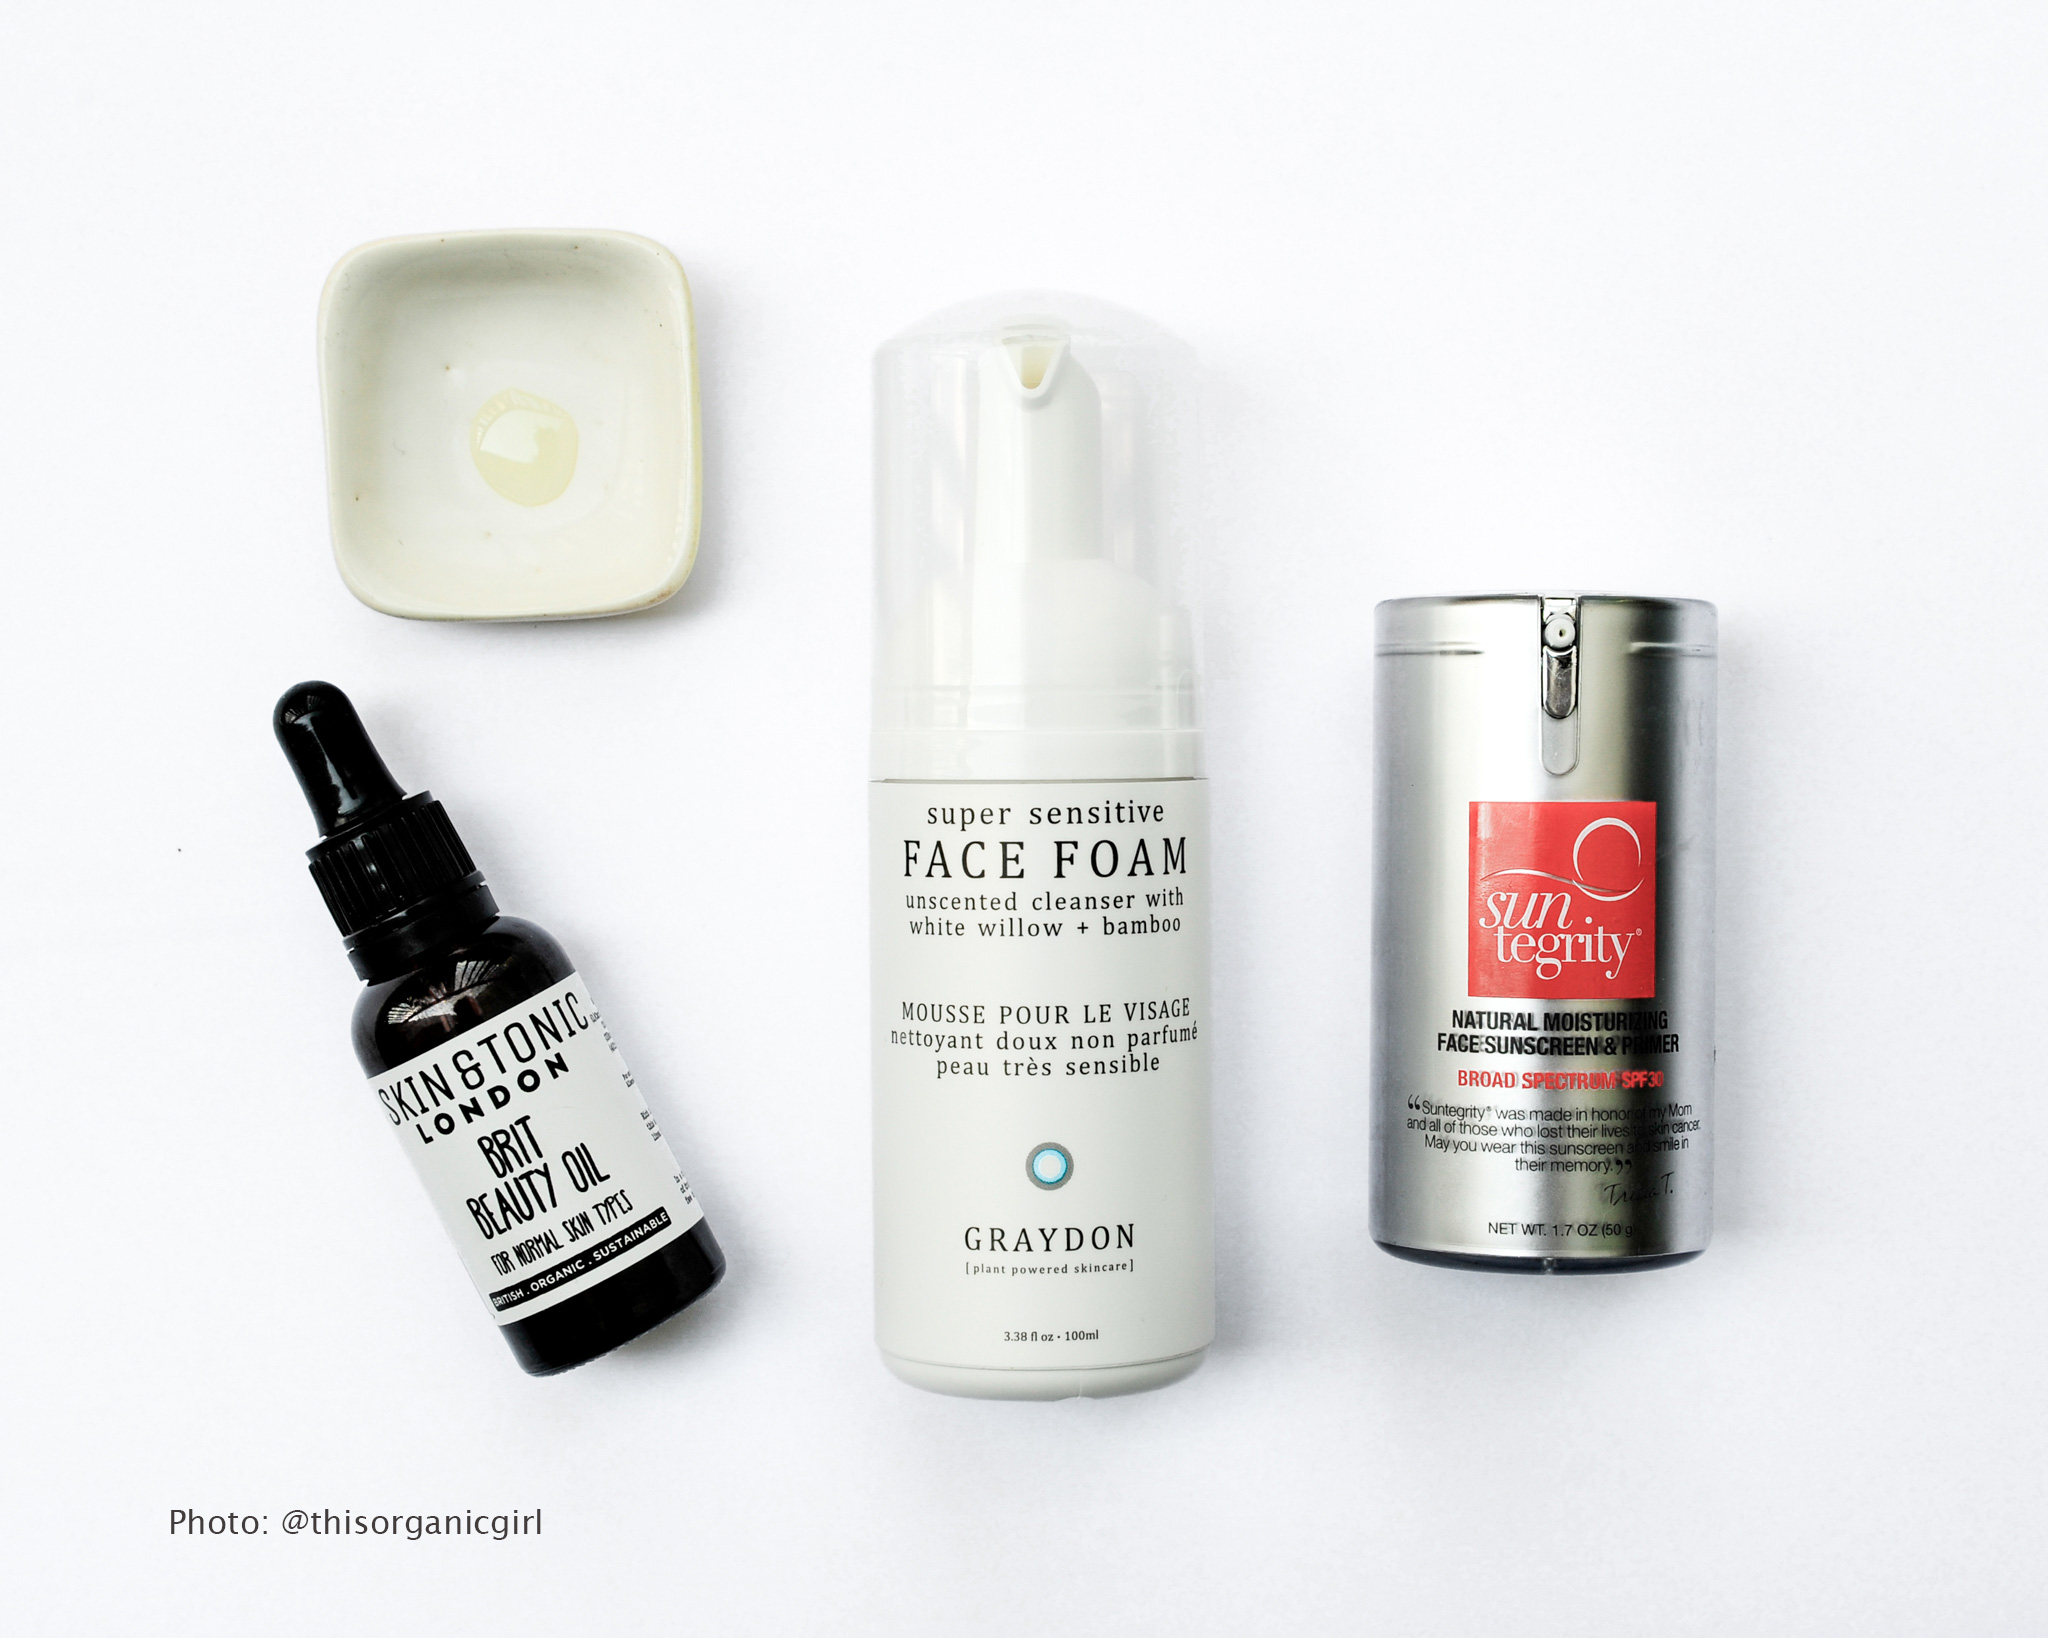 Time for an upgrade. - Top-performing clean skin care products hand-picked for your skin type.